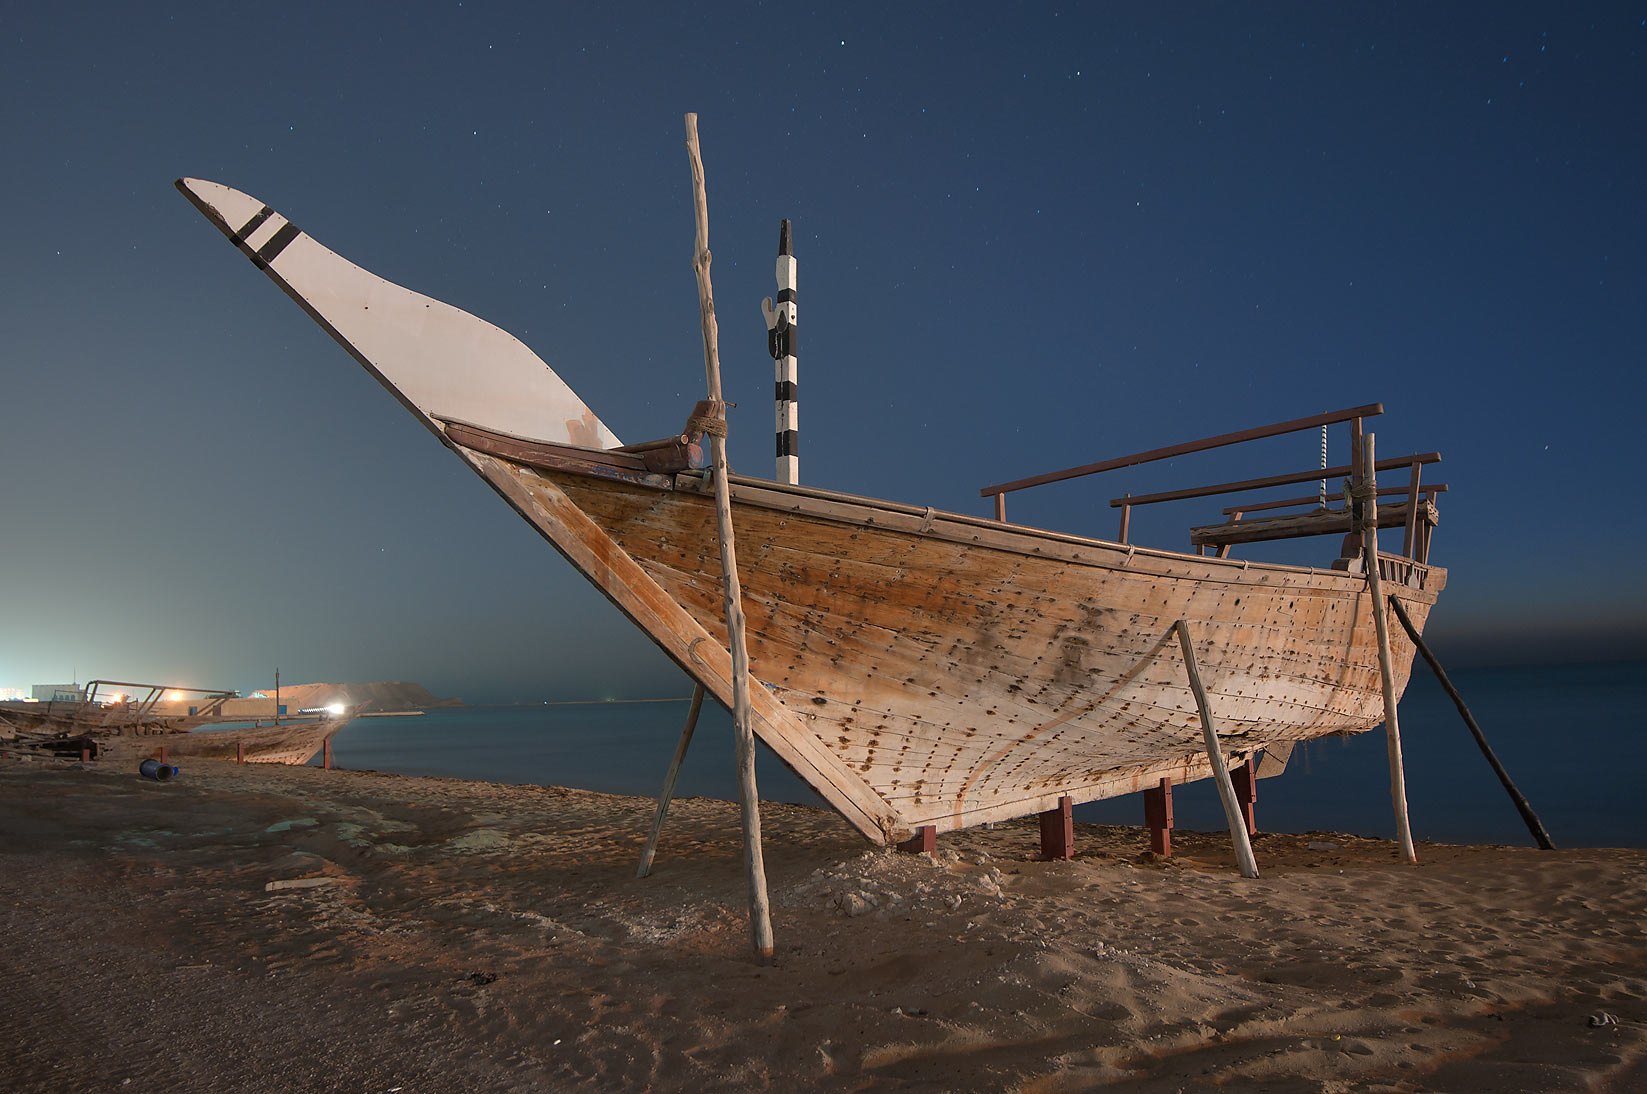 Beached dhow boat at early morning. Al Wakrah, Qatar